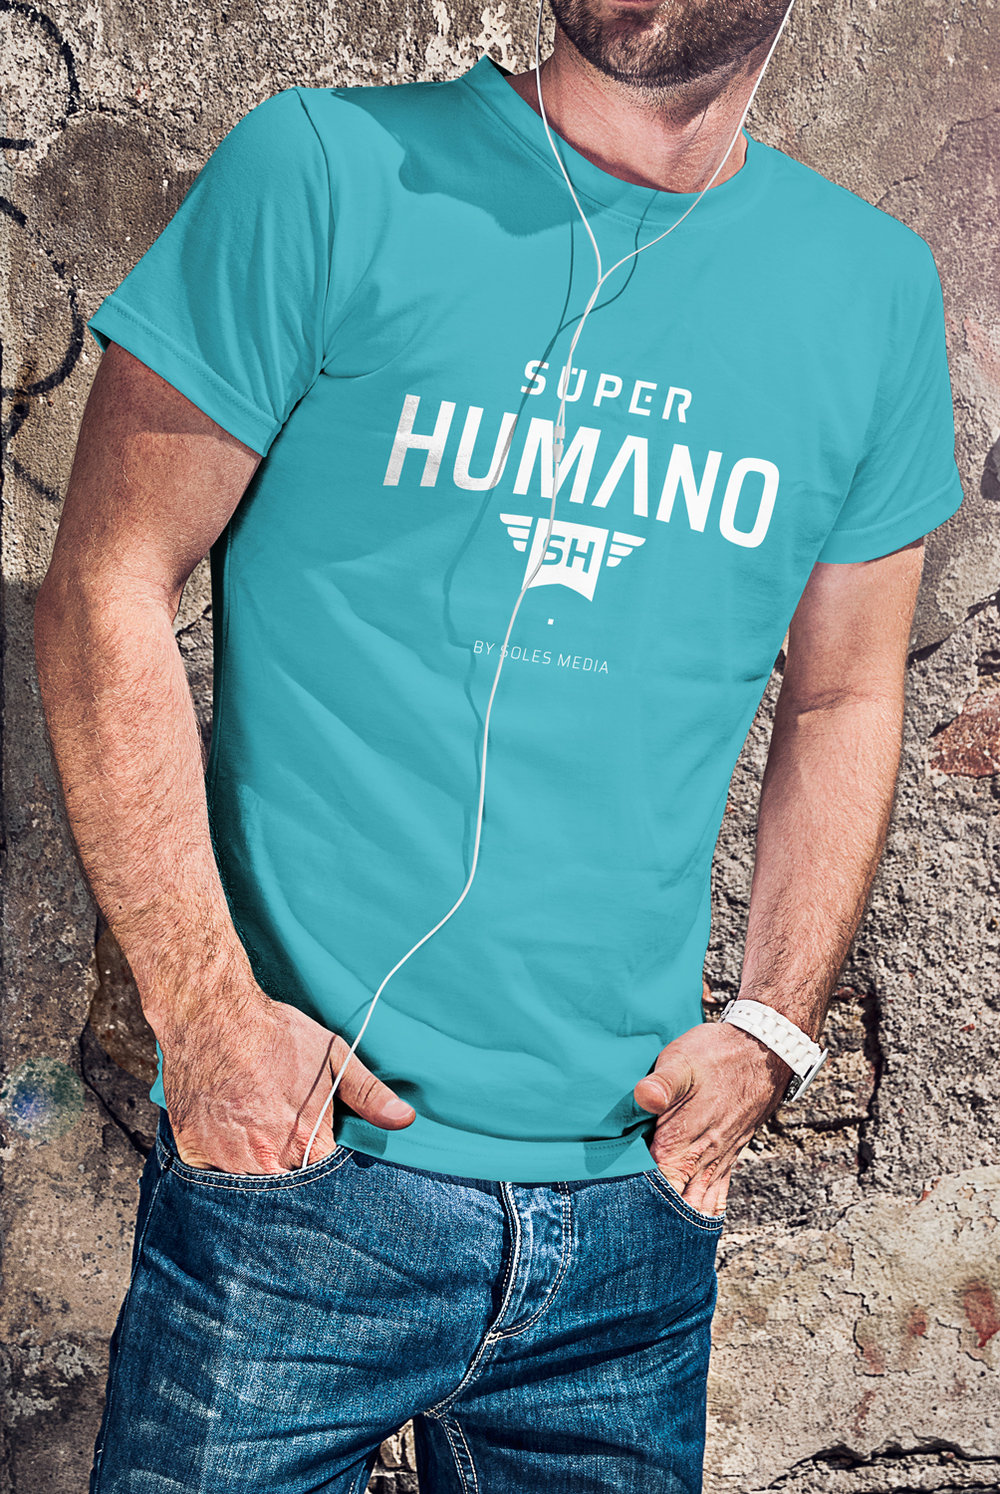 logo-2-shirt-man.jpg